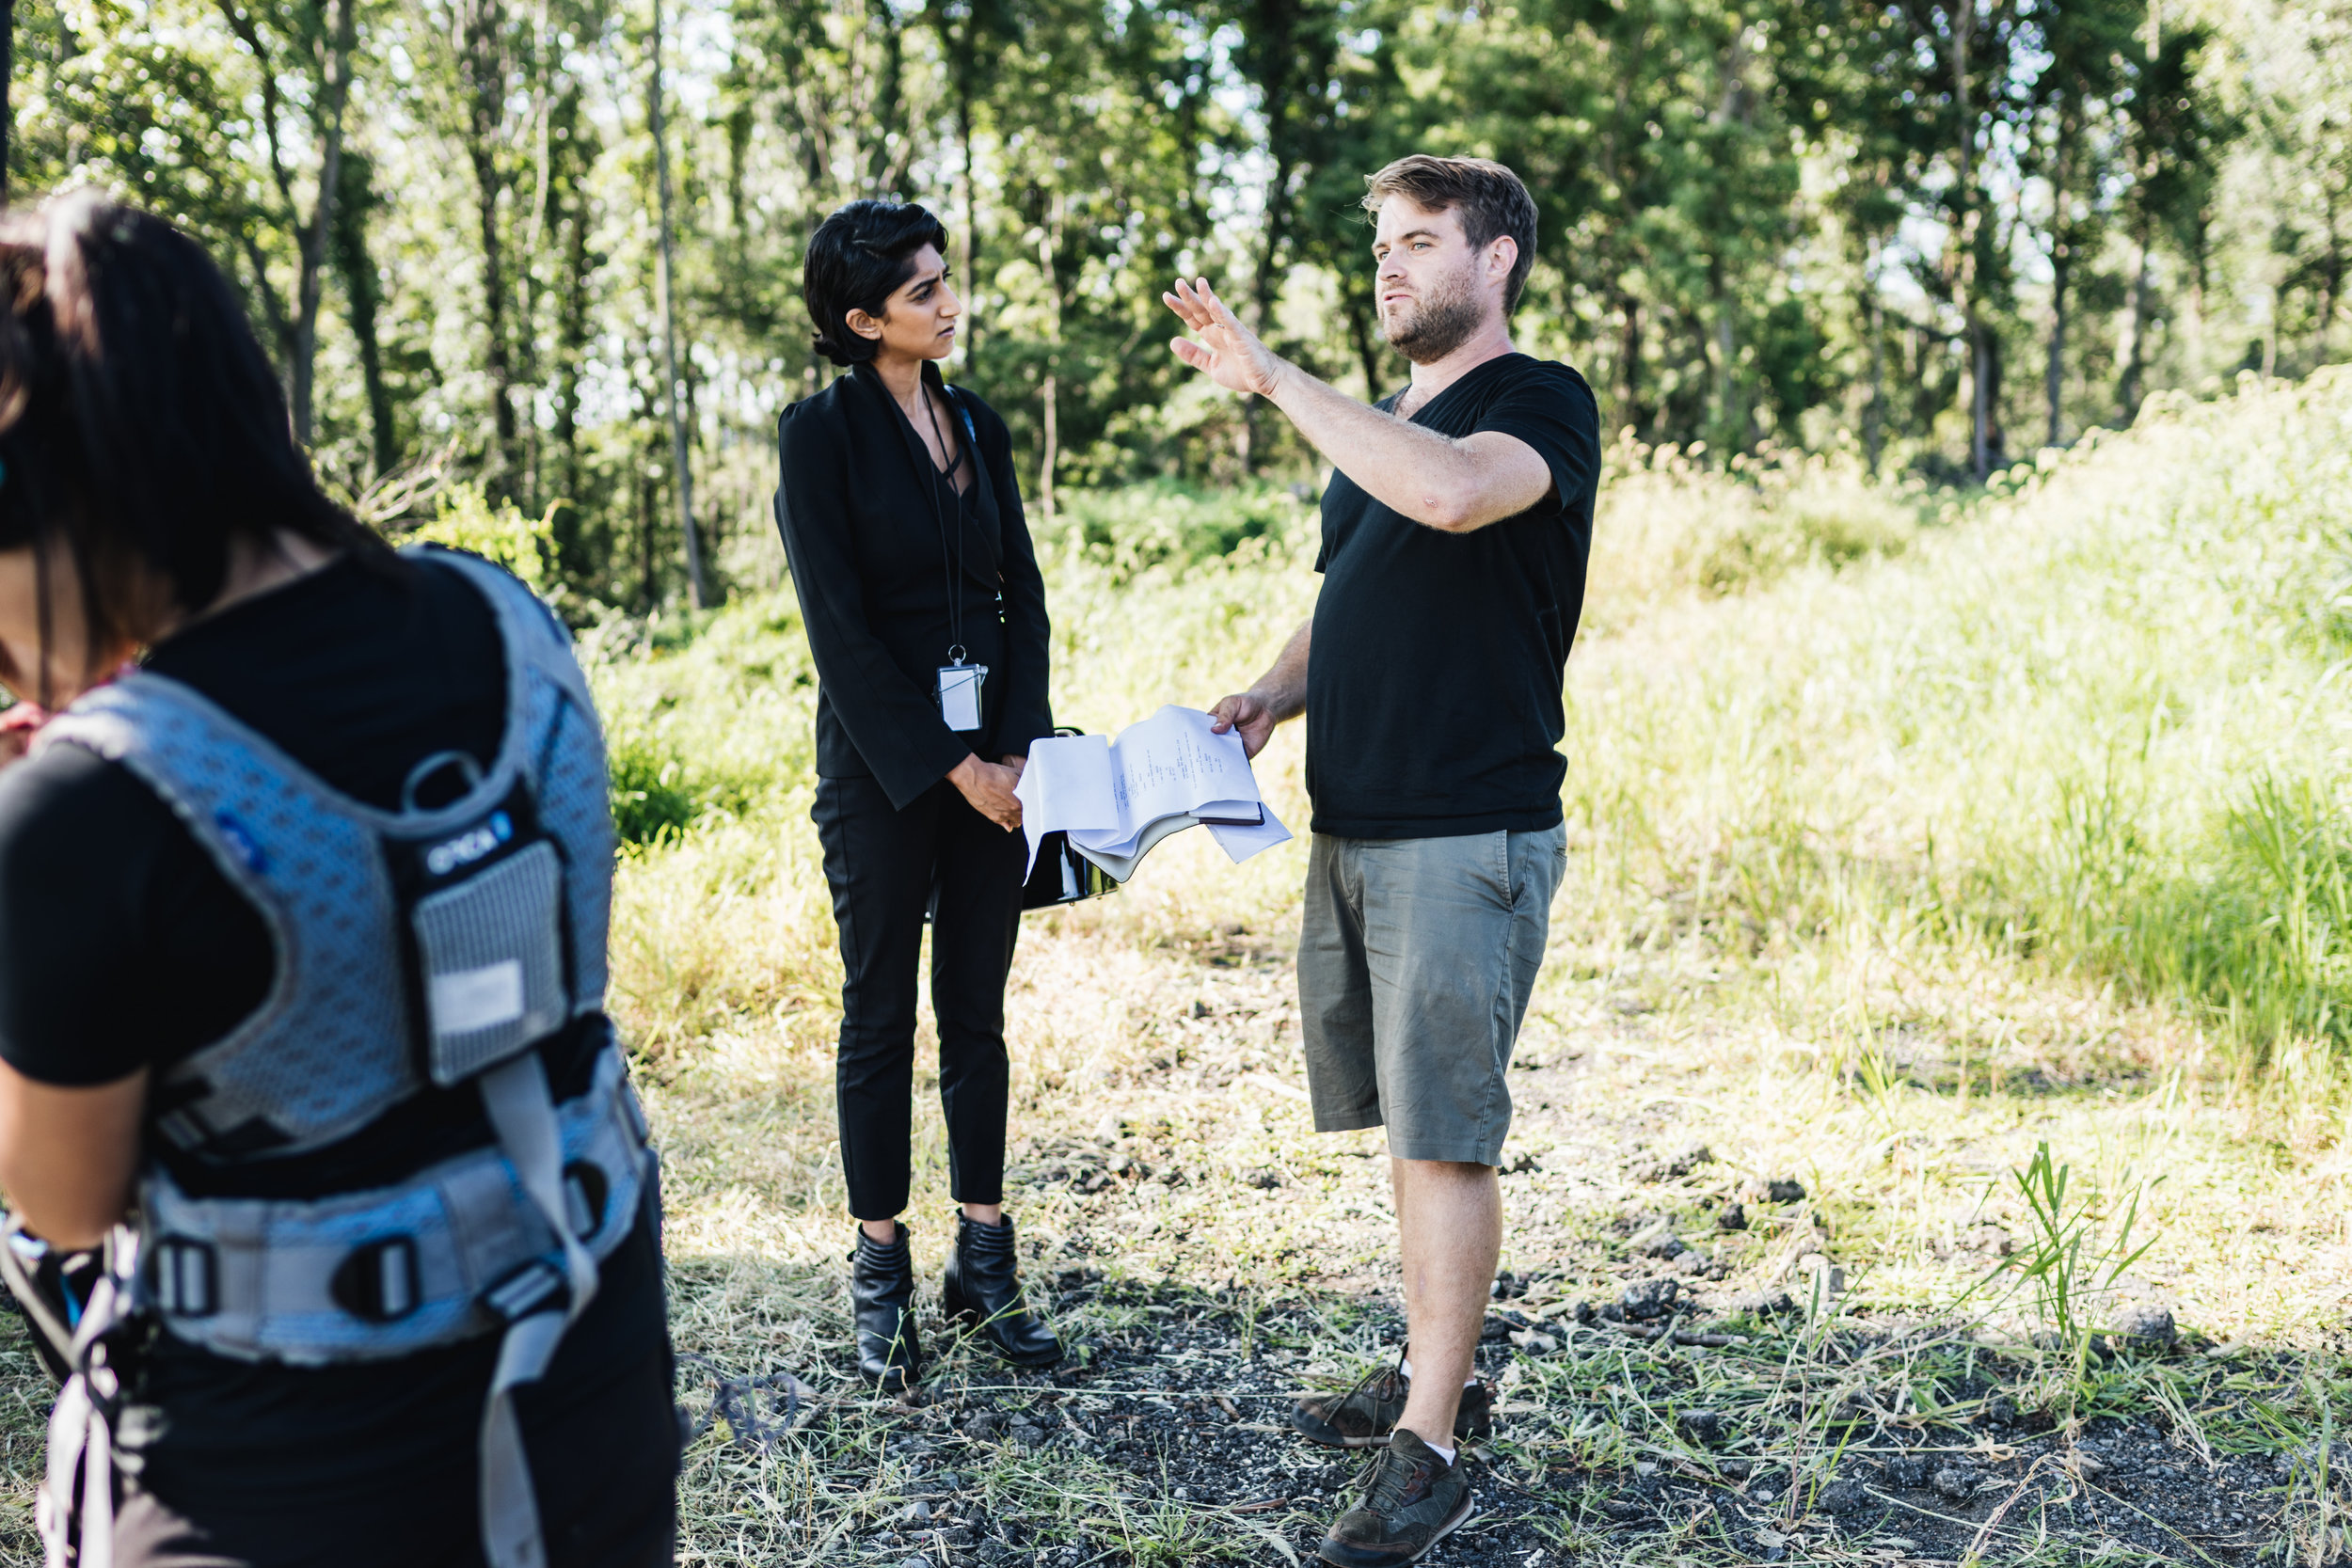 Moving Picture Institute fellow Ryan Patch gives scene directions to lead actress Sunita Mani ( GLOW ) on set of our newest original short film,  Regulation .